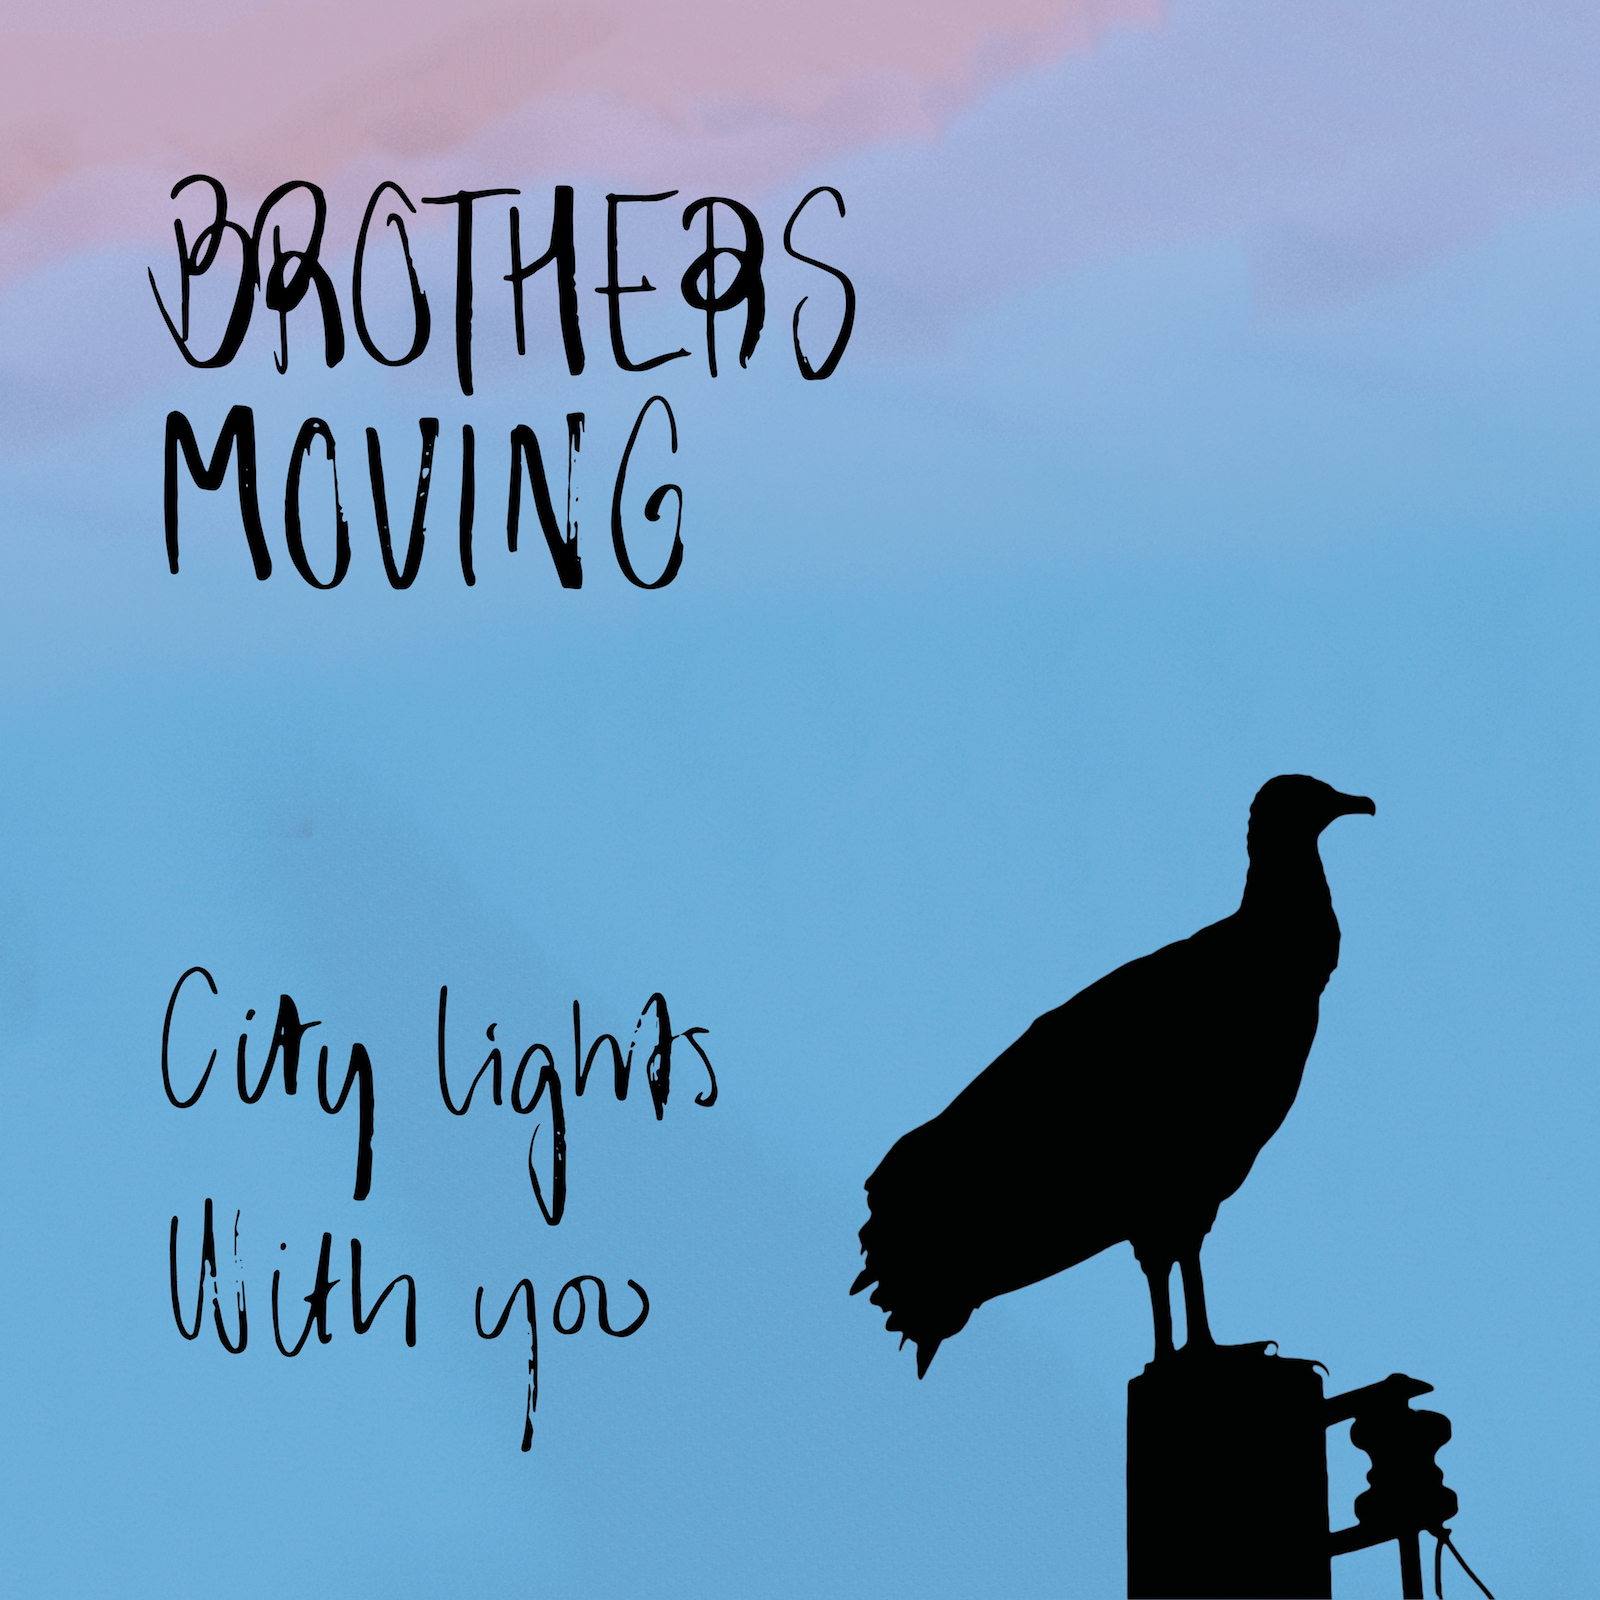 brothers moving single 1 1600px - City Lights & With You